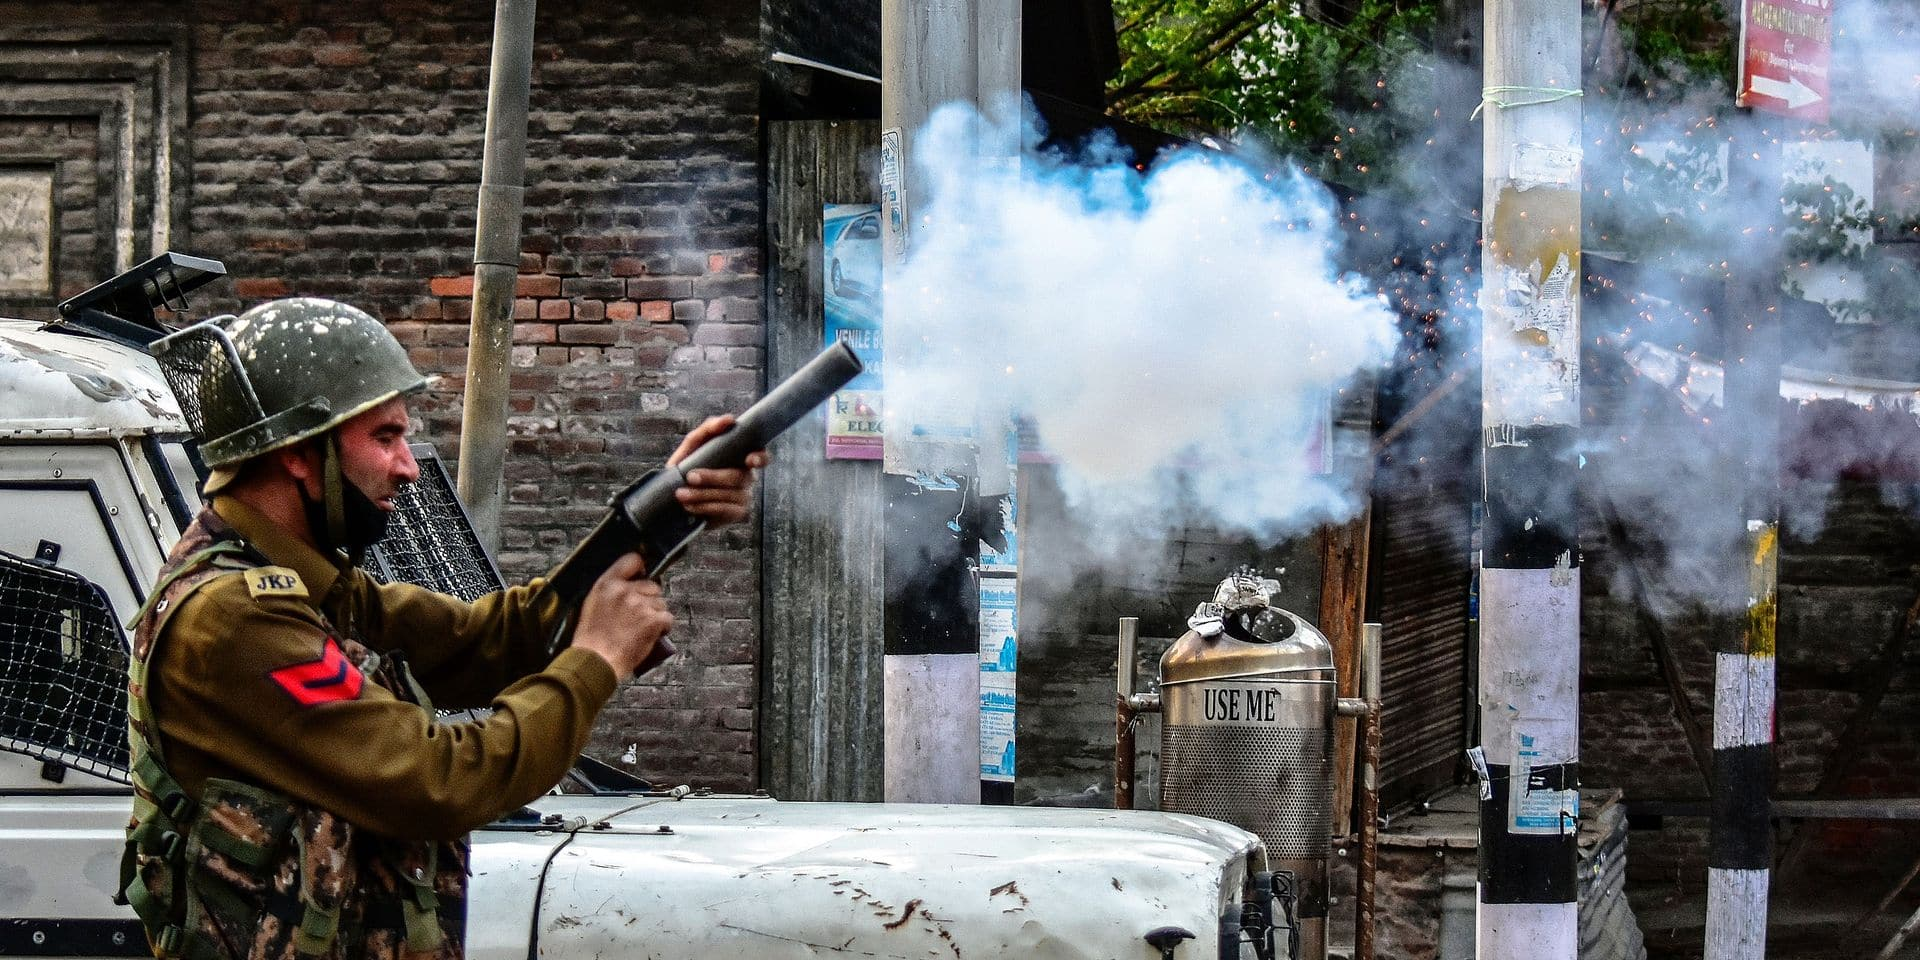 April 2, 2018 - Srinagar, India - An Indian policeman fires a tear gas shell towards Kashmiri protesters during a protest against the killings in separate encounters in south Kashmir. Muslim majority areas of Kashmir Monday observed a complete shutdown to protest the killing of 4 civilians and 13 rebels in separate encounters in south Kashmir. Authorities imposed curfew in several areas to stop street protests. The call for shutdown was given by the separatist groups. Stone-pelting incidents were reported from some parts of the Kashmir valley. Meanwhile, authorities also suspended mobile internet services in Kashmir valley. PICTURE NOT INCLUDED IN THE CONTRACT ! Only BELGIUM !